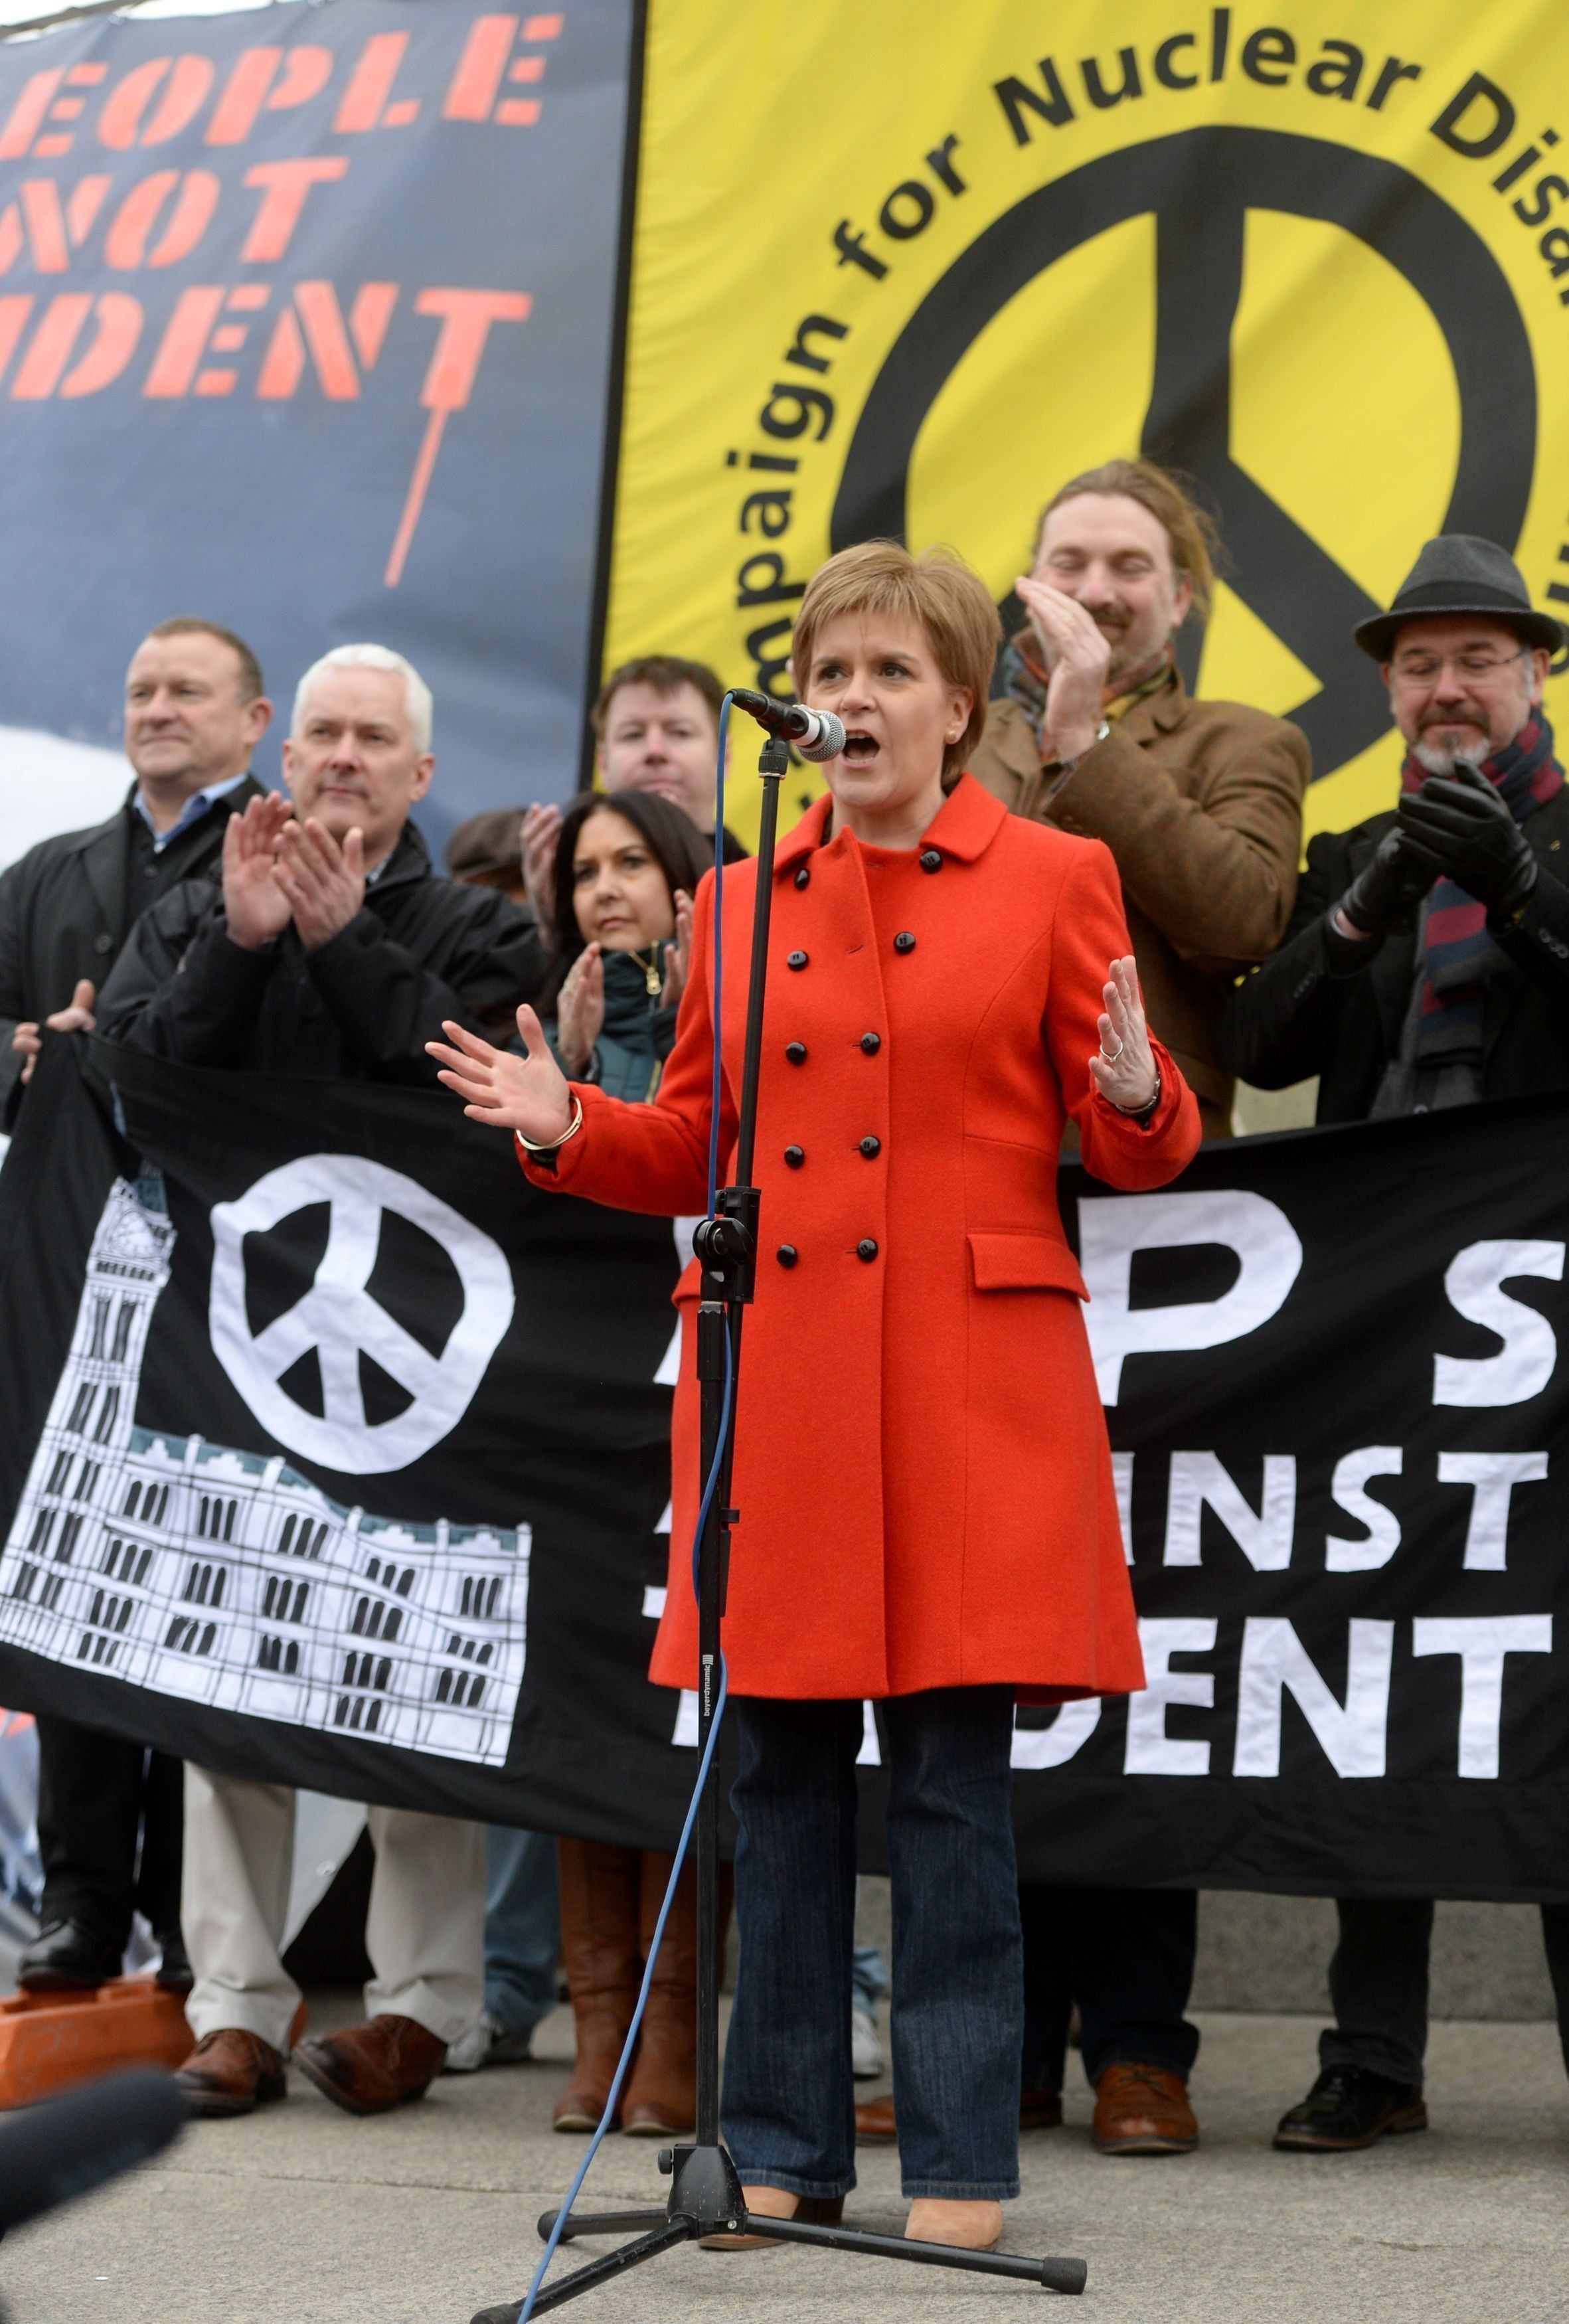 Labour Must Scrap Nuclear Weapons Programme To Get SNP Election Deal, Says